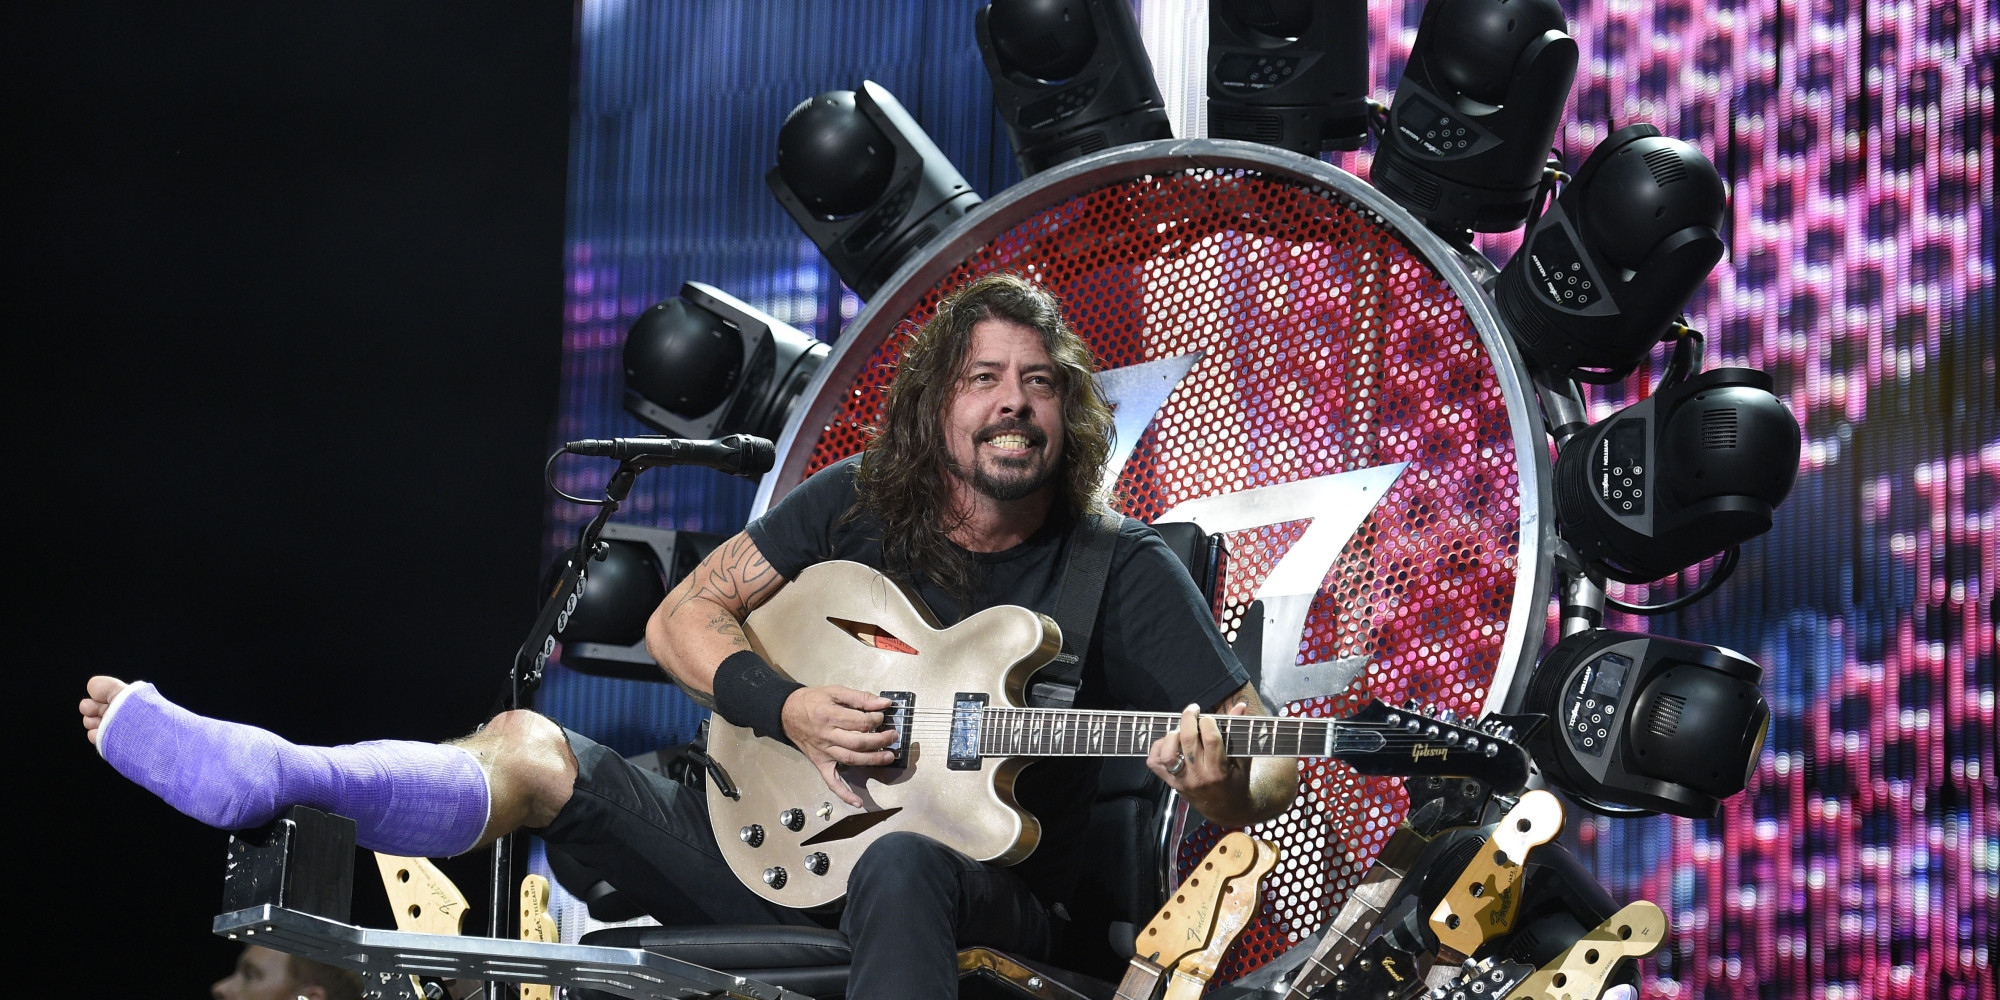 dave grohl mantradave grohl nirvana, dave grohl twitter, dave grohl tattoo, dave grohl guitar, dave grohl young, dave grohl 2017, dave grohl wife, dave grohl mantra, dave grohl sound city, dave grohl net worth, dave grohl wiki, dave grohl quotes, dave grohl drum set, dave grohl blackbird, dave grohl vocal, dave grohl acoustic, dave grohl ghost, dave grohl walk, dave grohl studio, dave grohl pedalboard